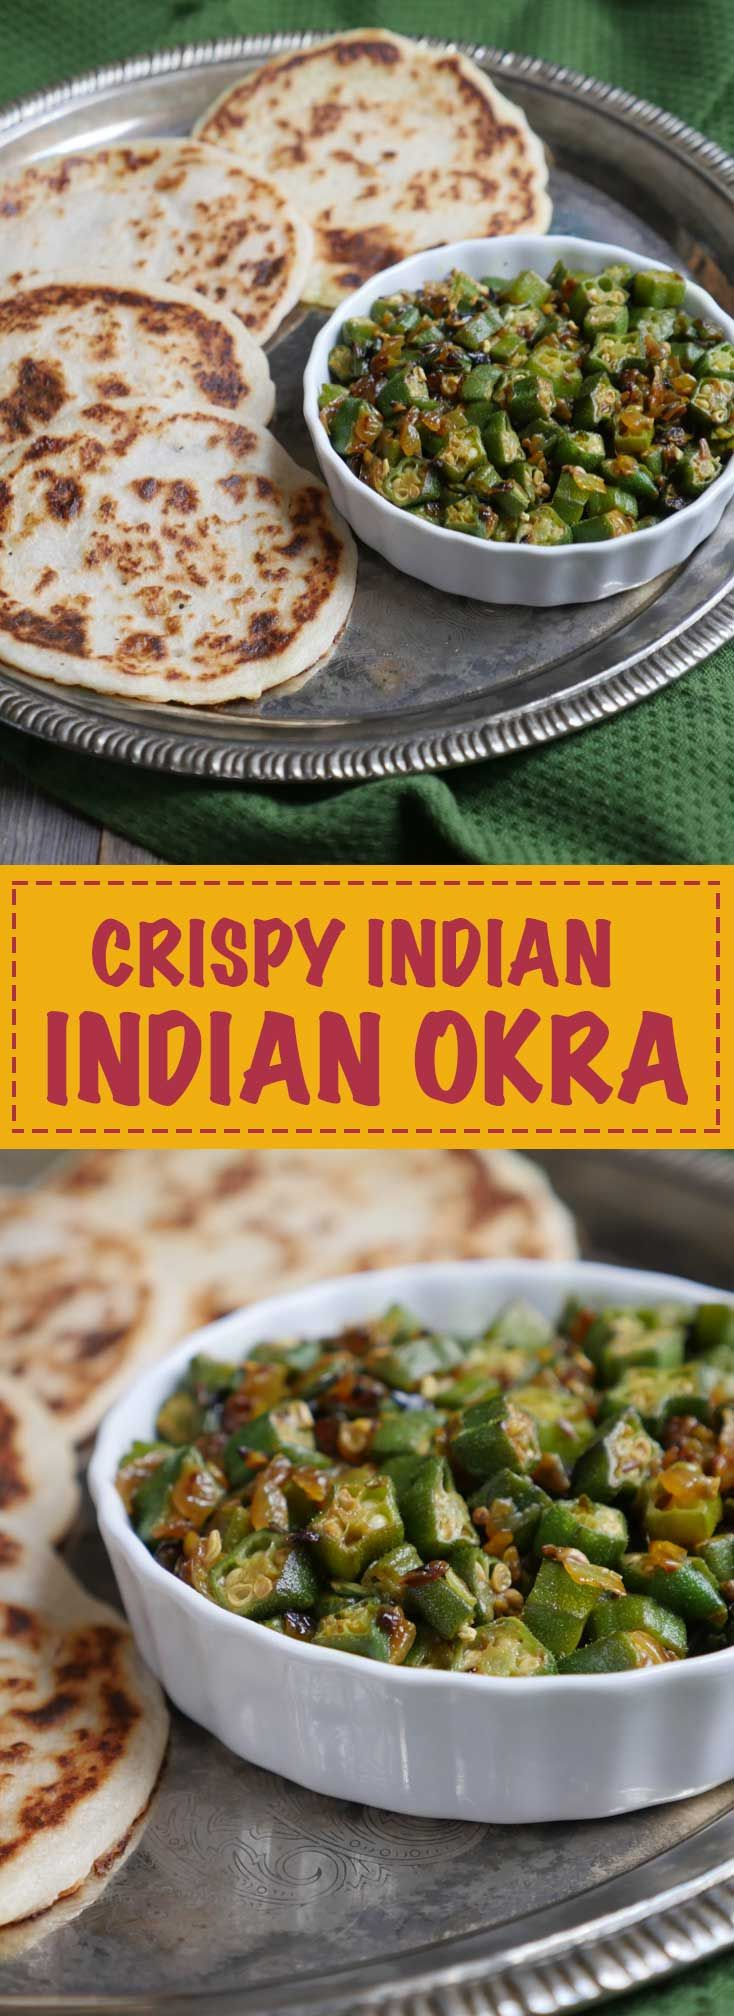 Crispy Indian Okra by Ashley of MyHeartBeets.com                                                                                                                                                      More